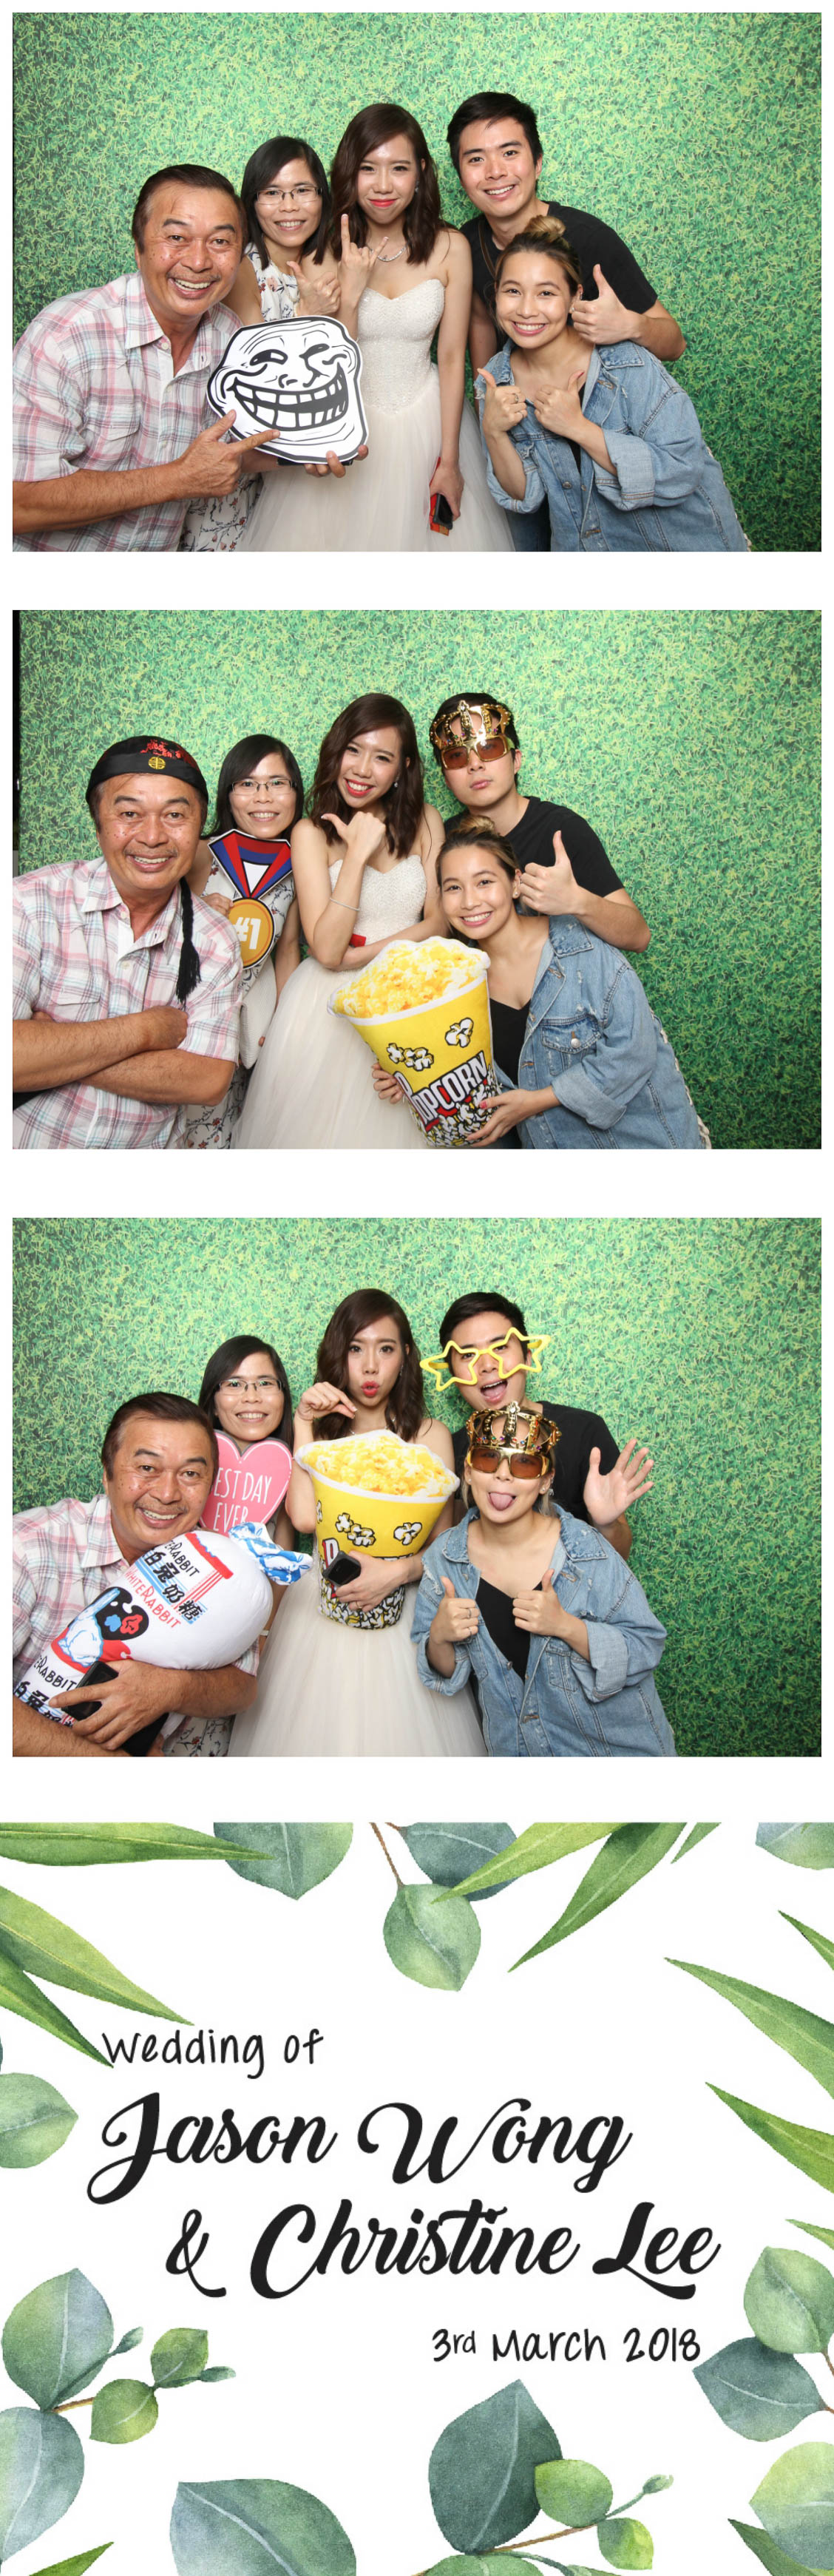 Photobooth 0302-8